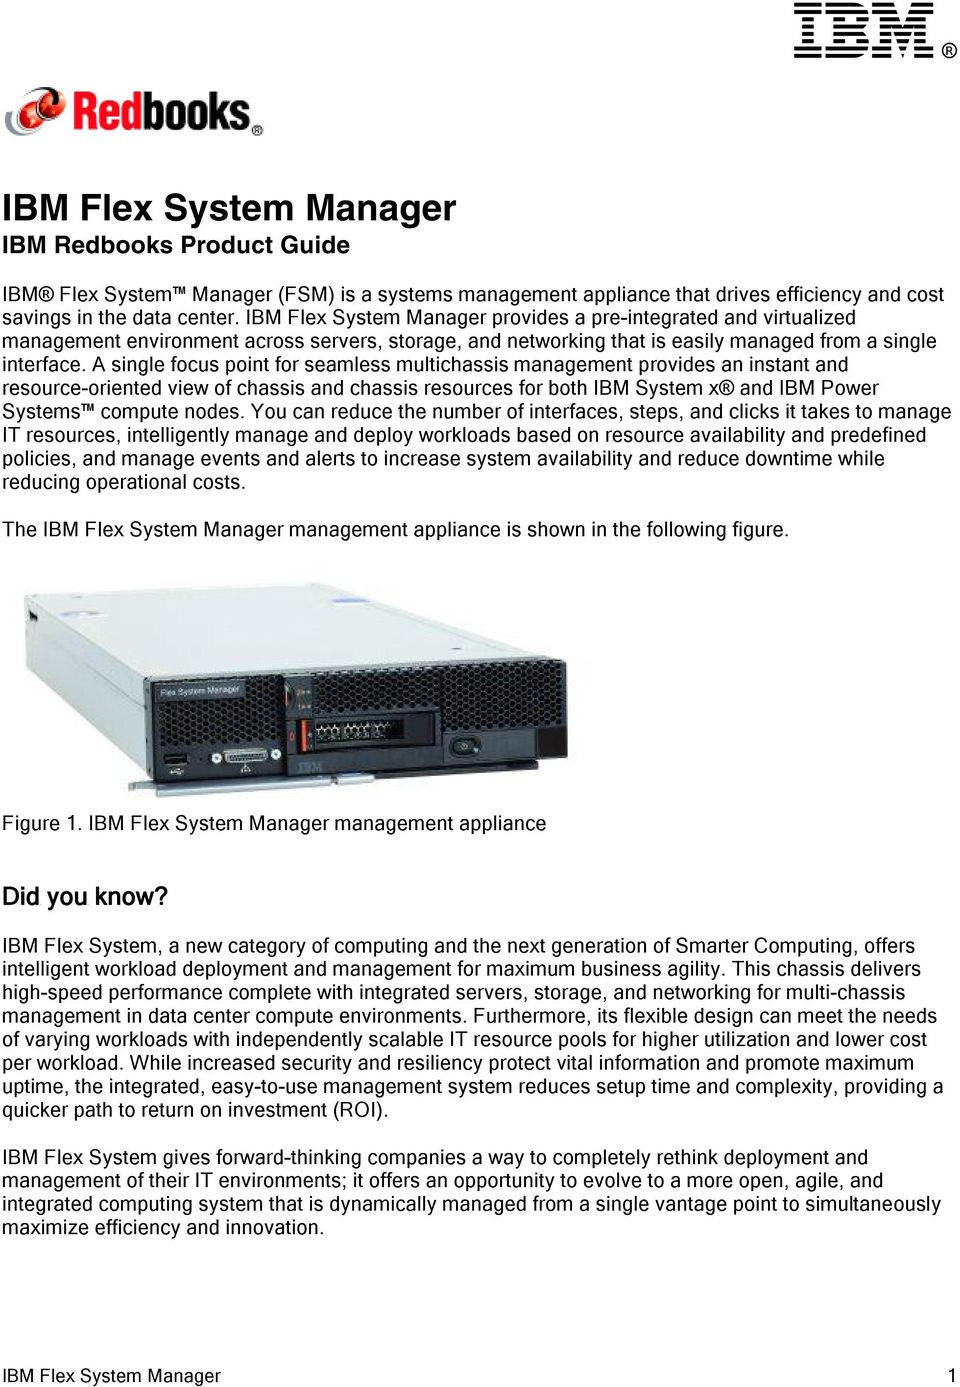 A single focus point for seamless multichassis management provides an instant and resource-oriented view of chassis and chassis resources for both IBM System x and IBM Power Systems compute nodes.